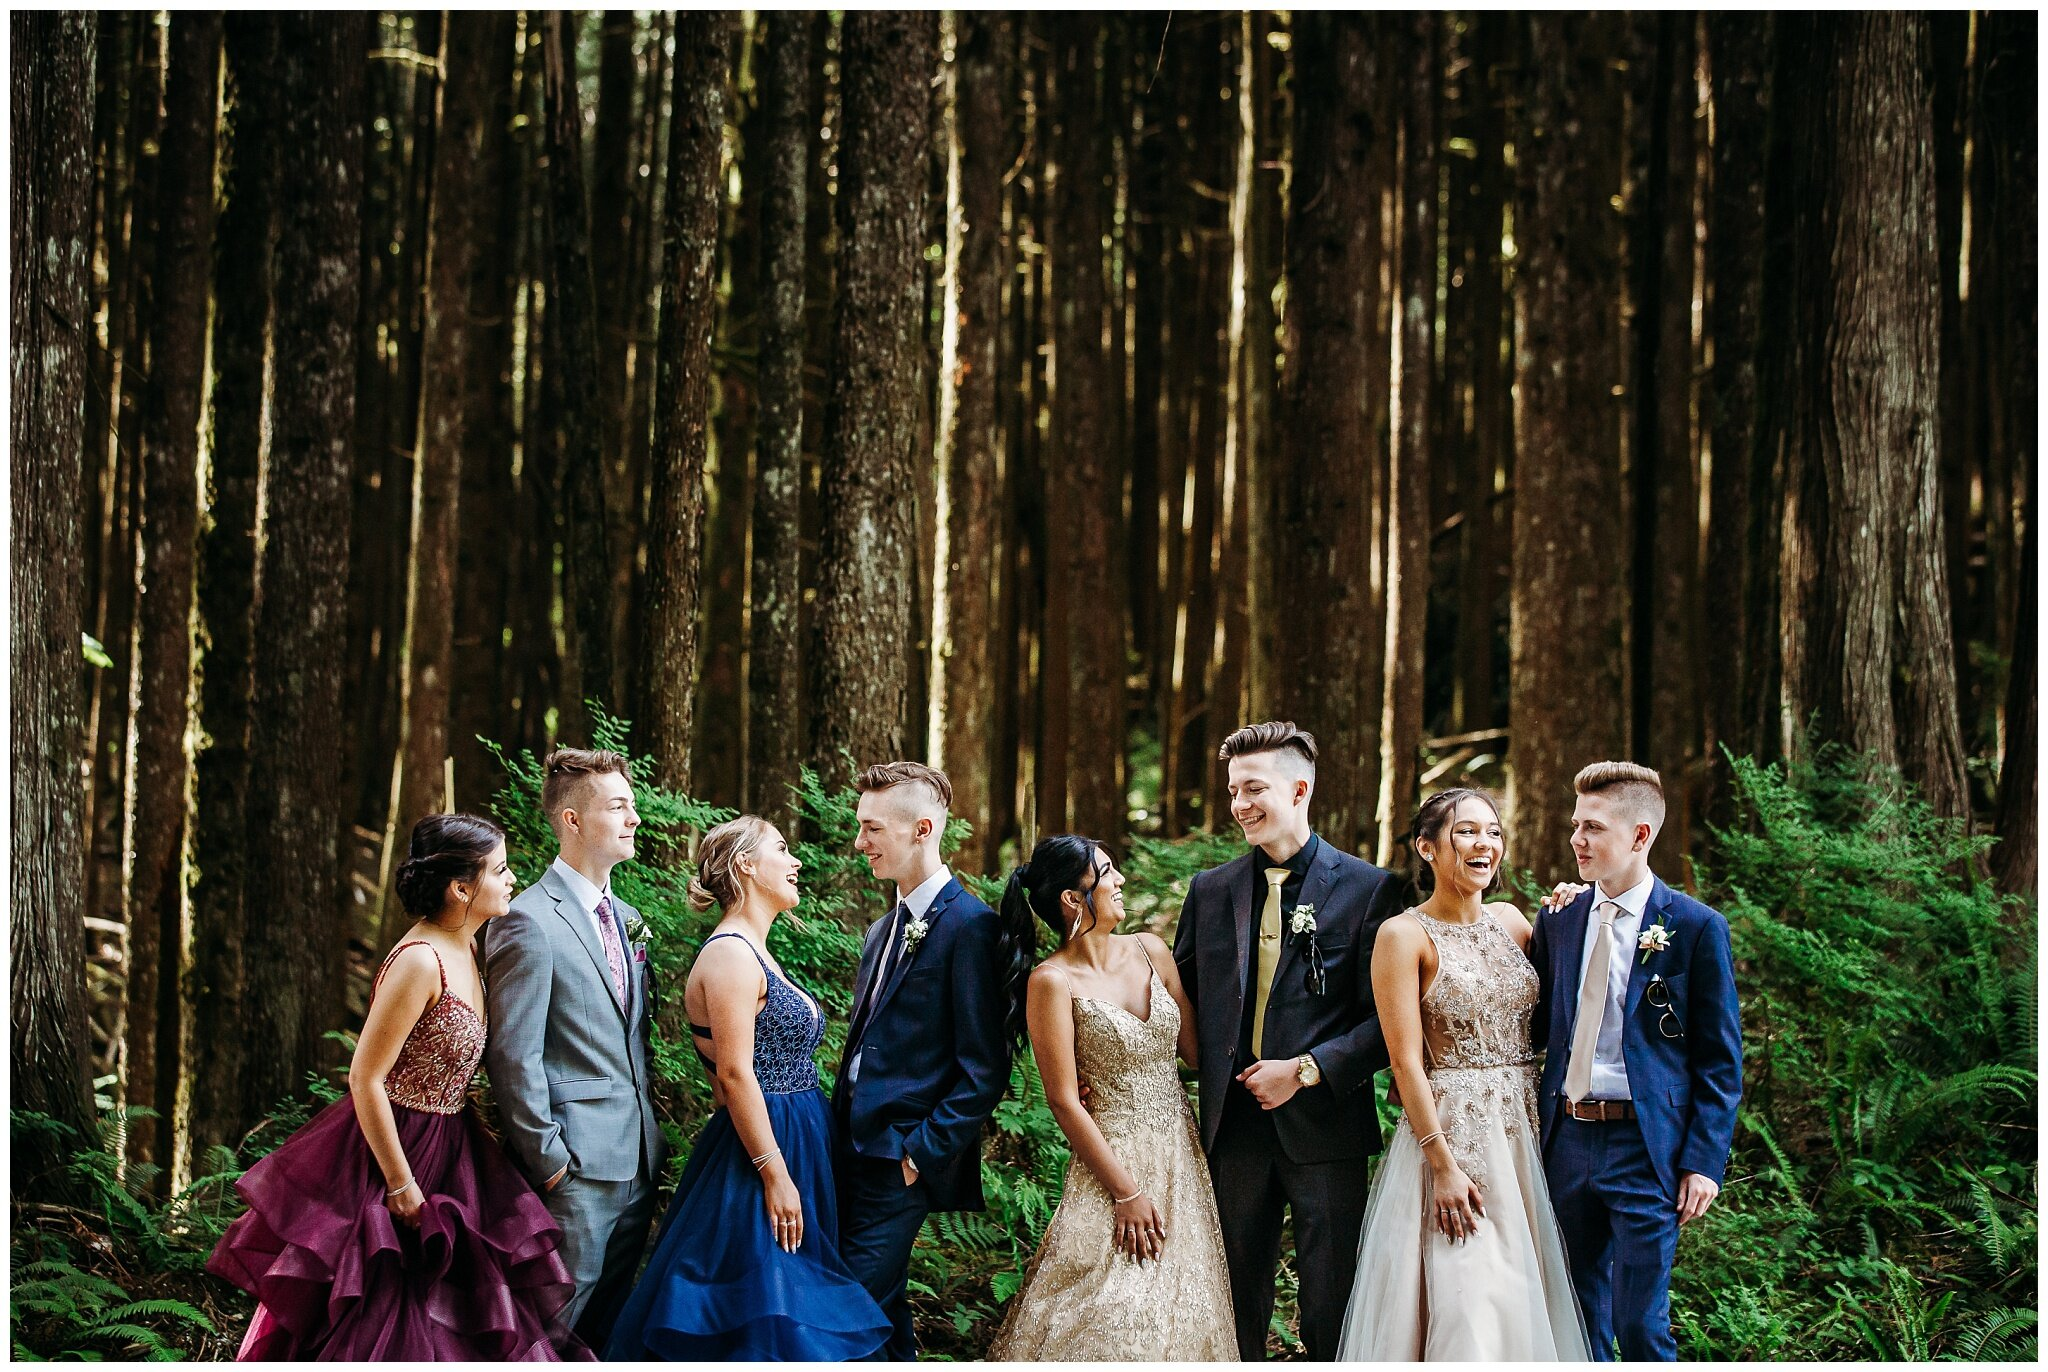 Abbotsford Highschool Prom Graduation Photographer 2019 Abbotsford fun bright_0028.jpg